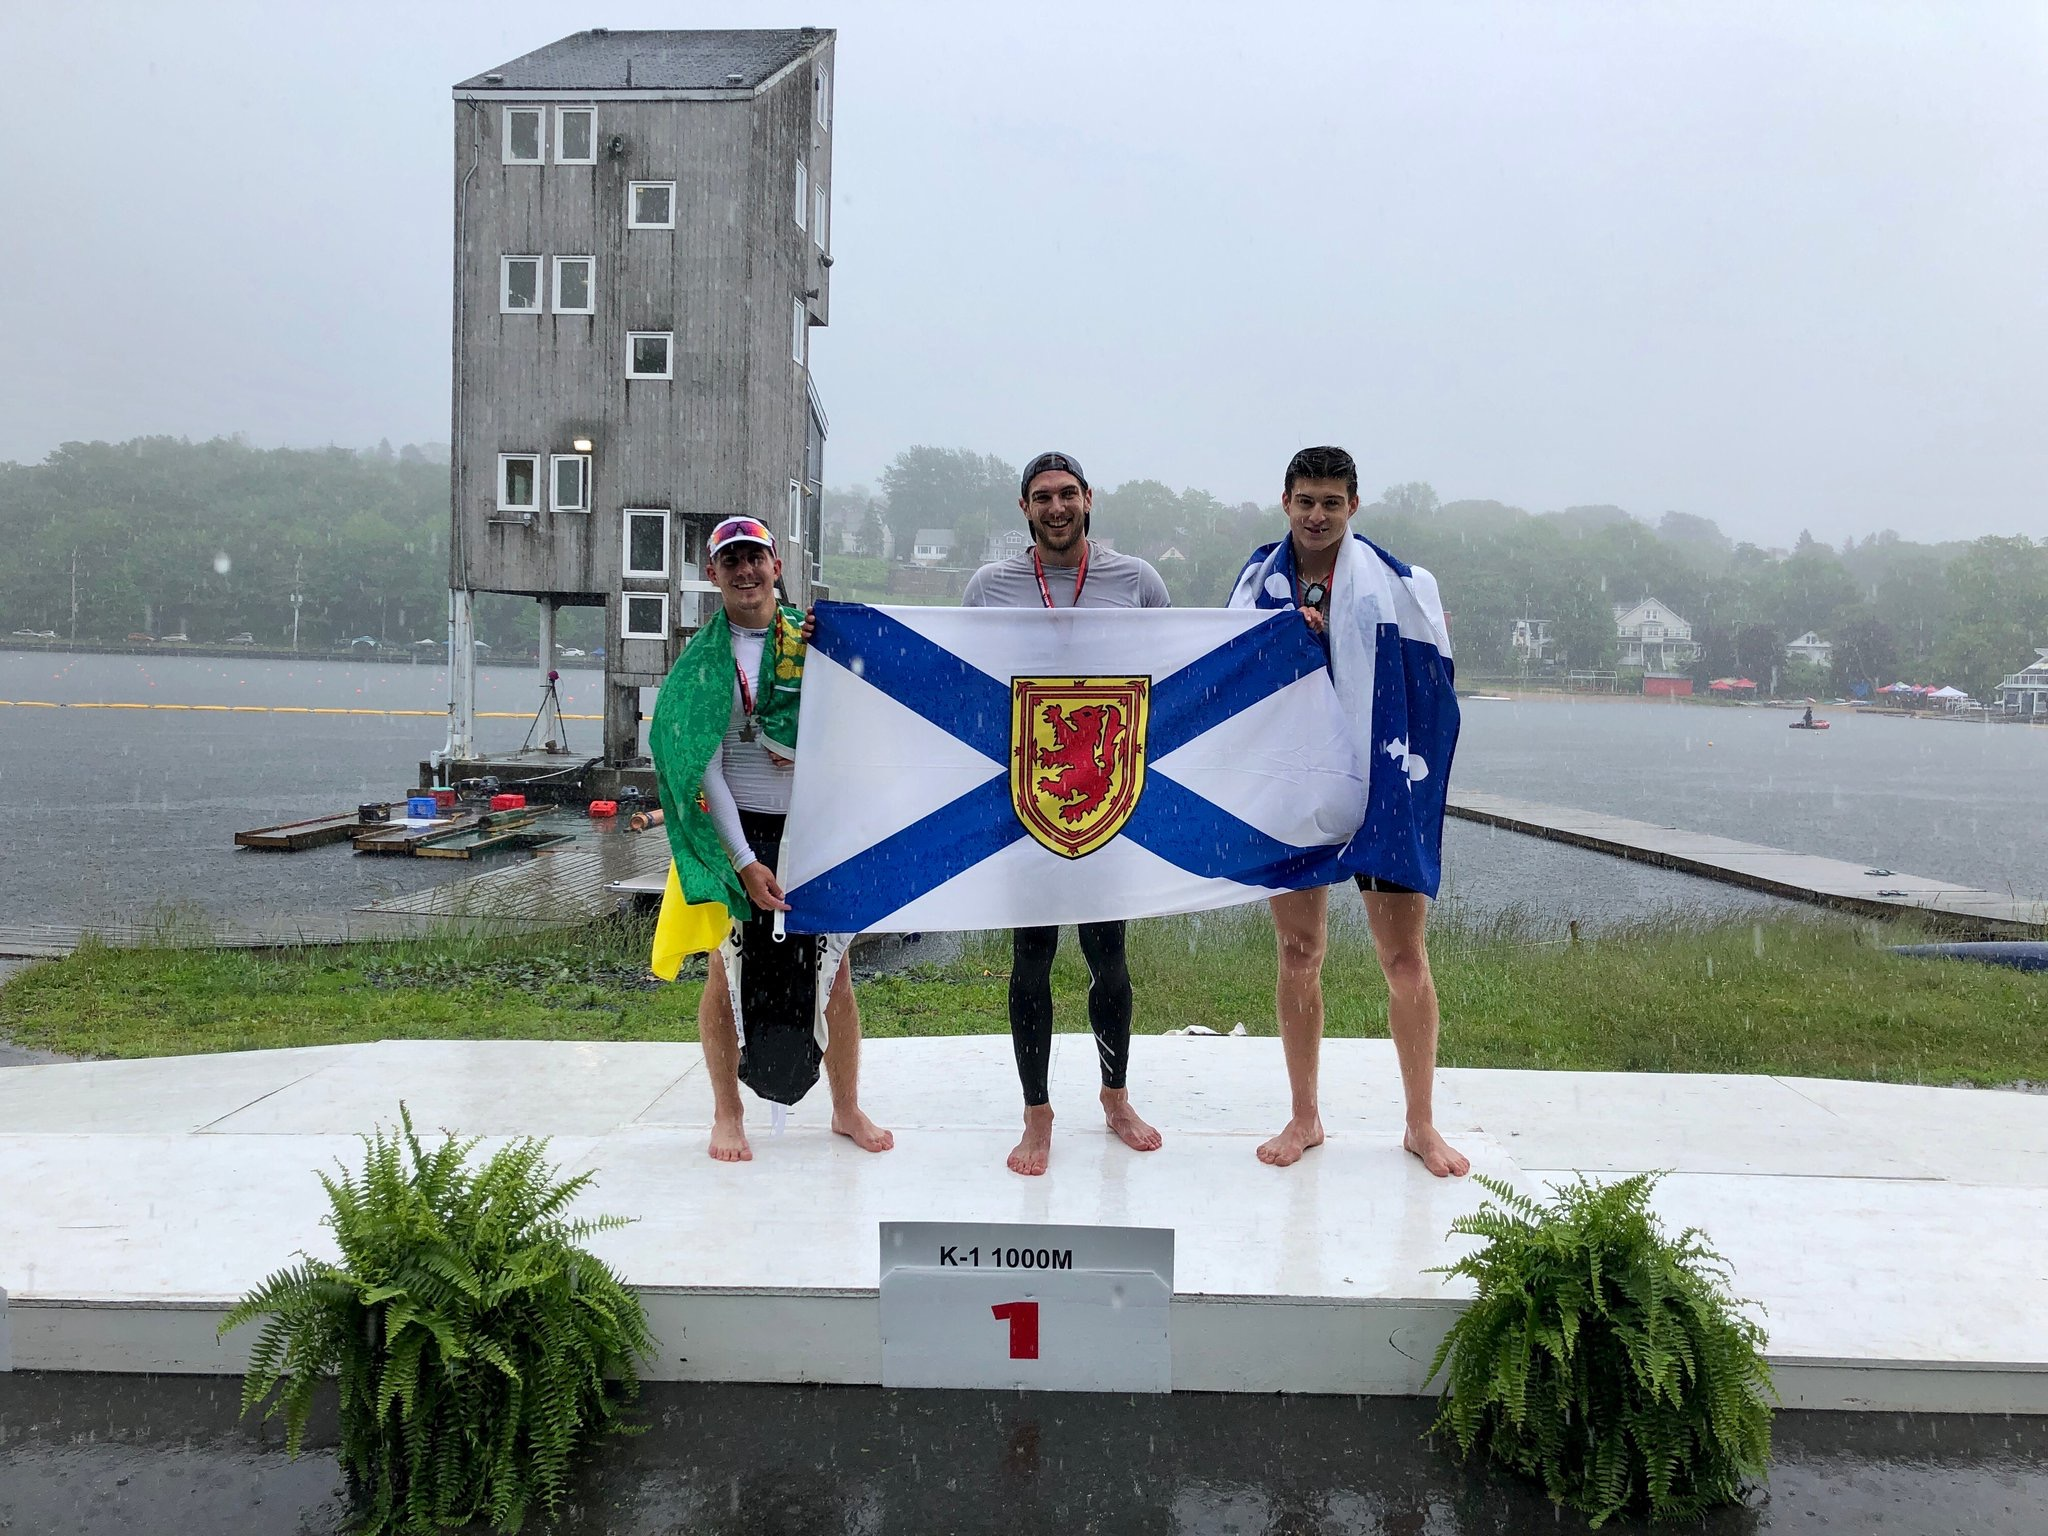 Marshall Hughes (NS) tops the podium with Jarret Kenke (SASK) in second place and Laurent Lavinge (QUE) for Men K-1 1000m. Hughes and Kenke later won the Men K-2 1000m.